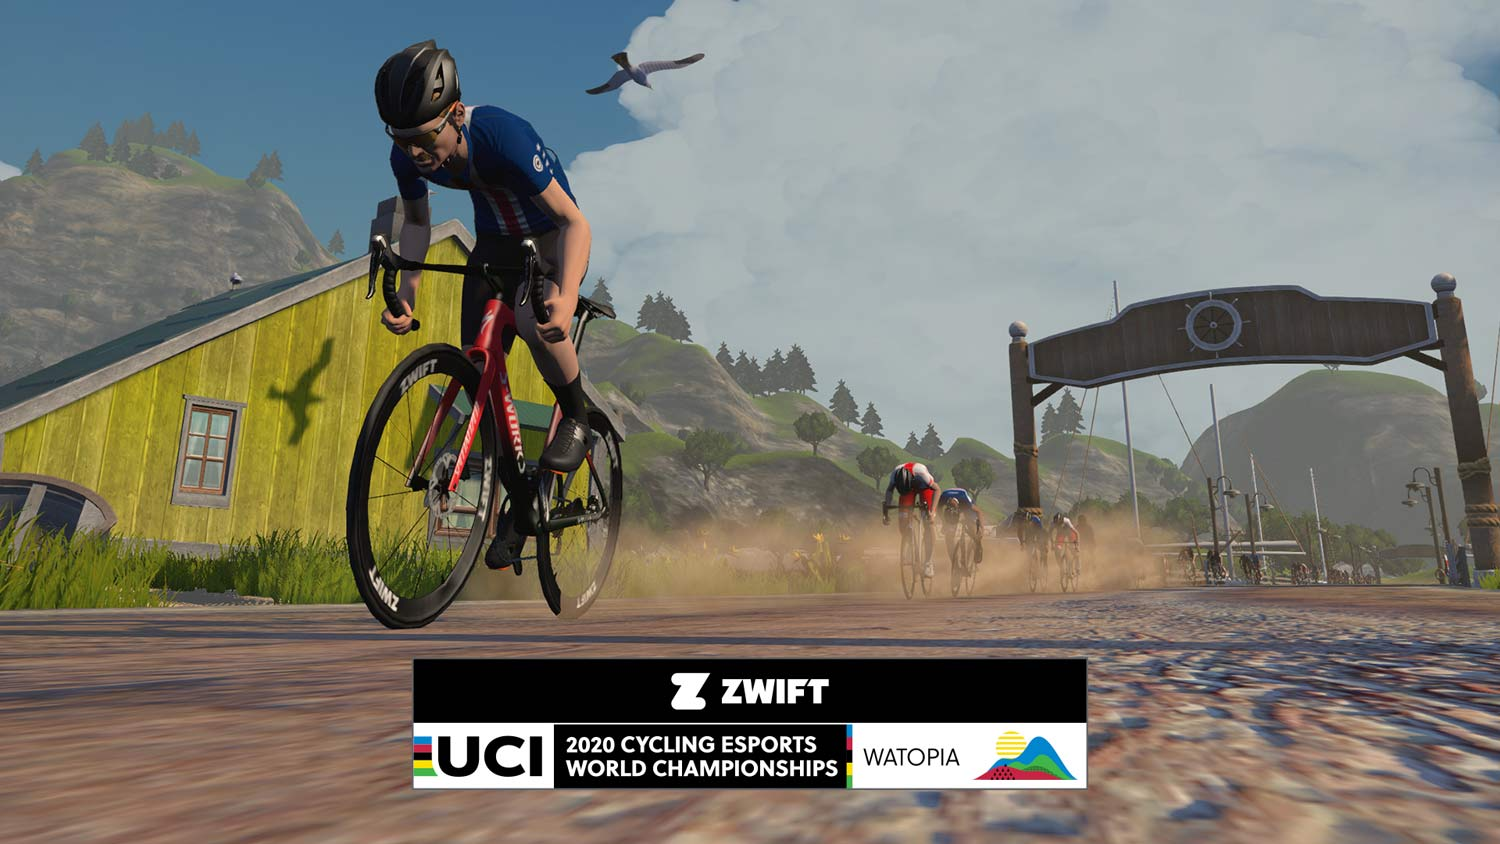 2020 UCI Zwift Cycling eSports World Championship details and community rides,Nations Challenge